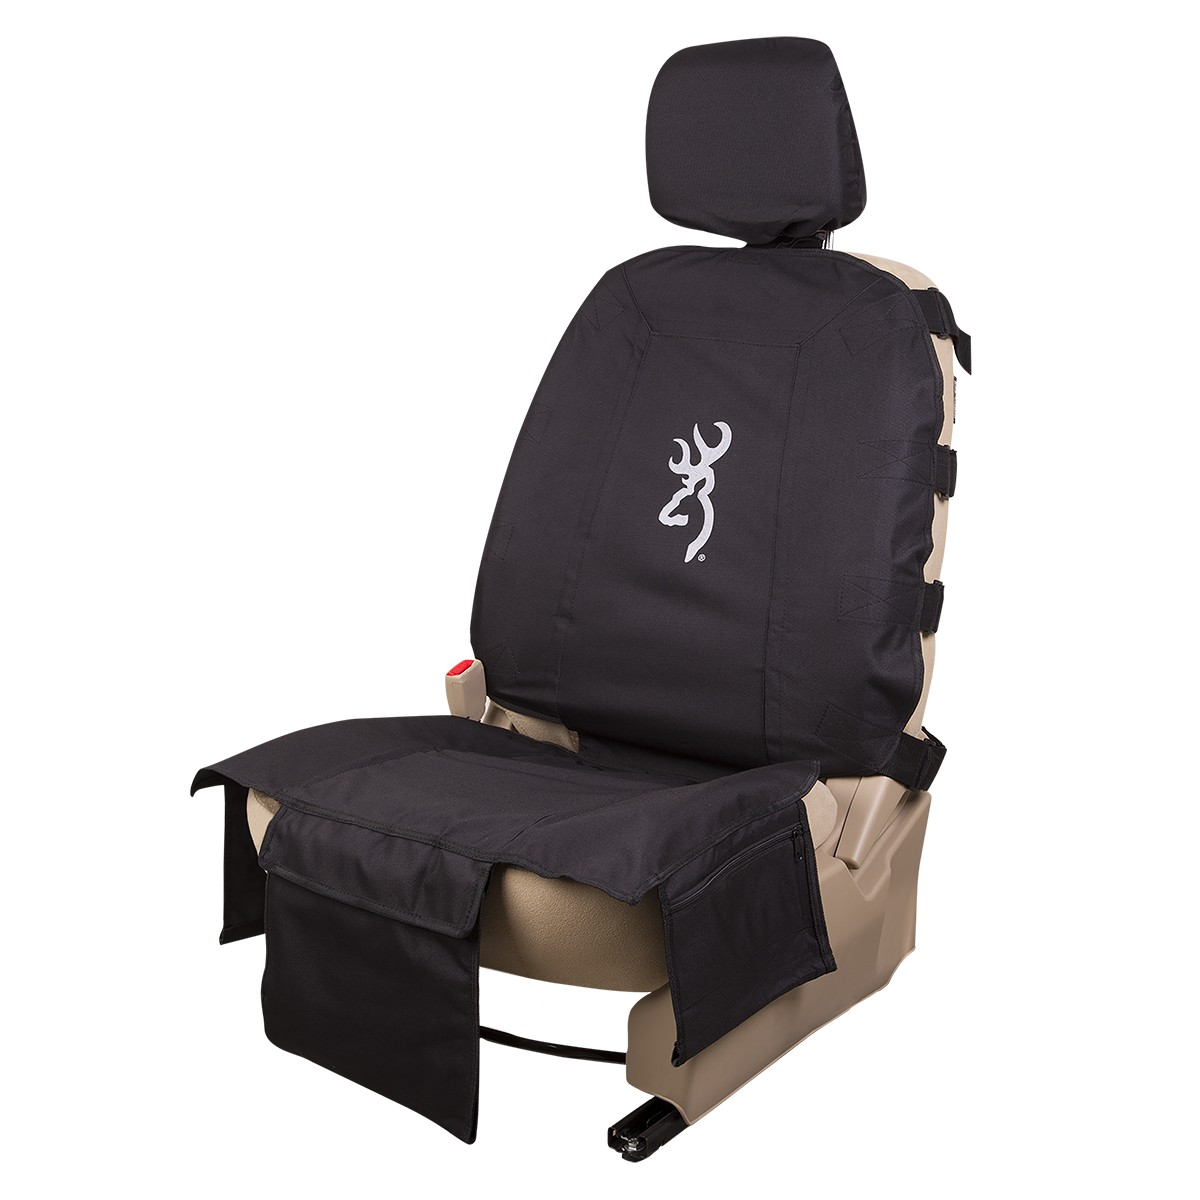 Browning Tactical Seat Cover  sc 1 st  CamoChic & Browning Tactical Black Seat Cover